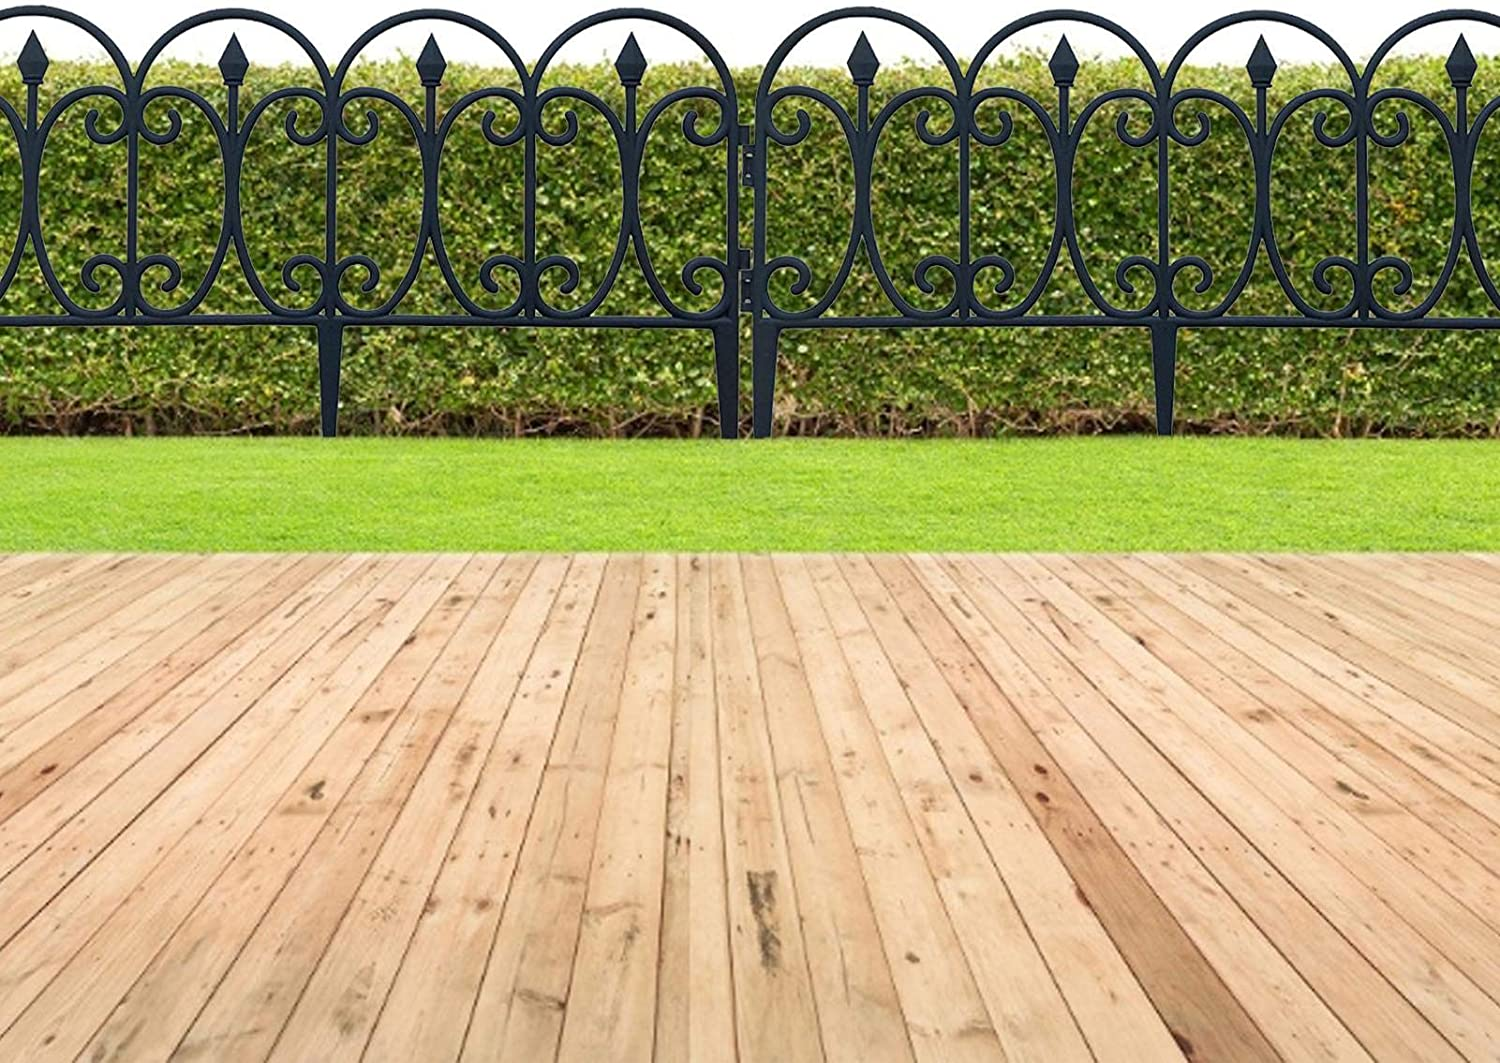 23.62in x 13inch Black Metal Landscape Wire Folding Fencing Patio Wire Border for Flower Bed Dog Barrier Tall Garden Edge WXGY 5pcs Decorative Garden Fence